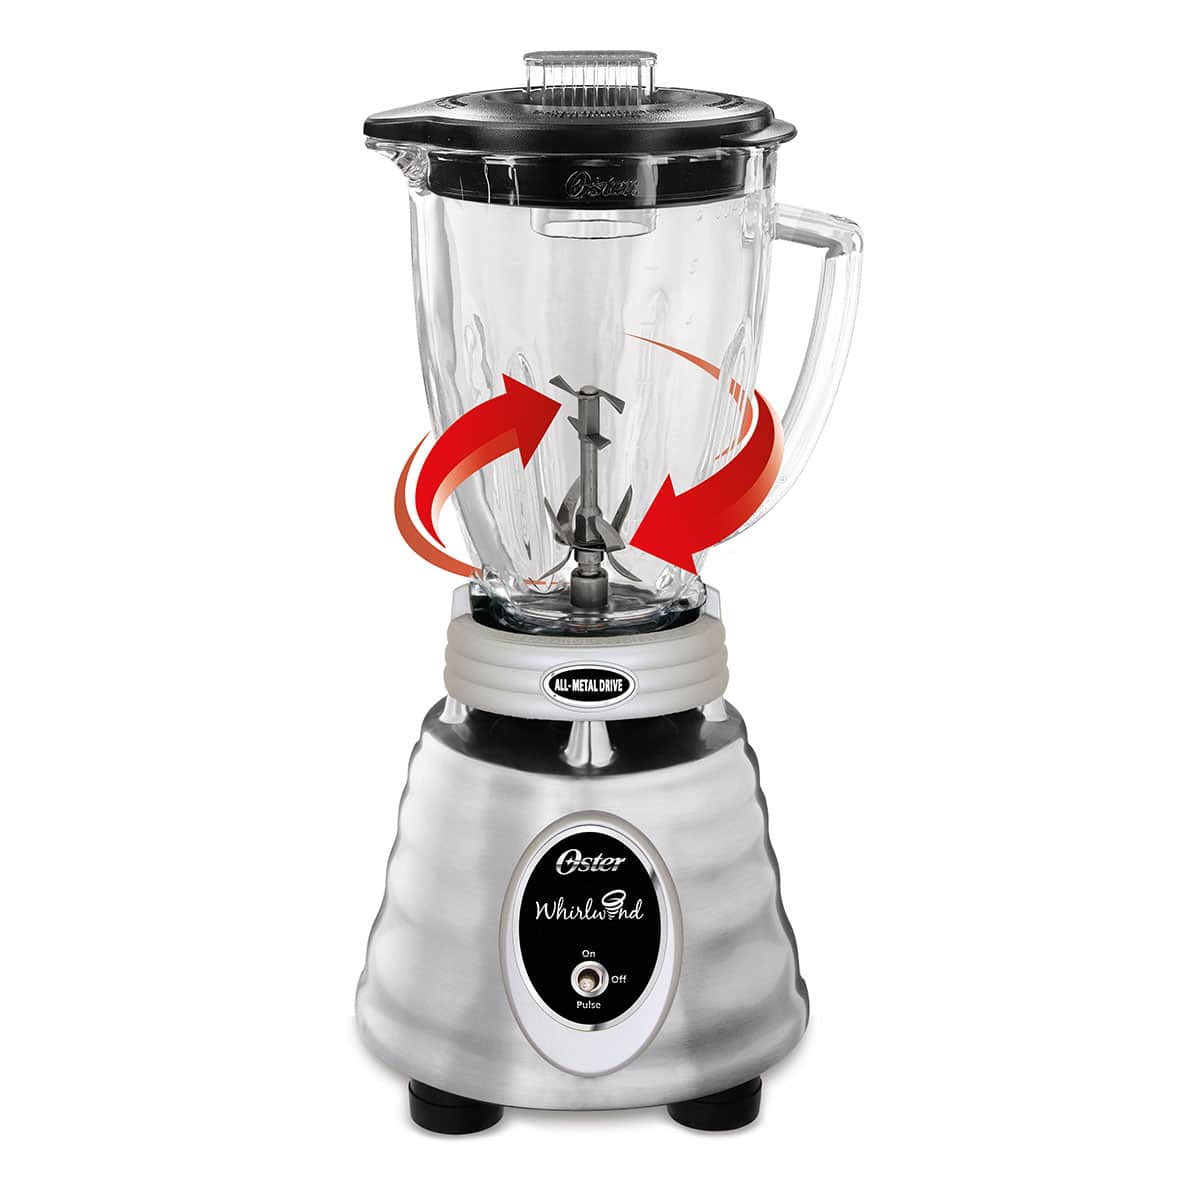 Oster Classic Series Whirlwind Blender - $29.99 + Free Shipping